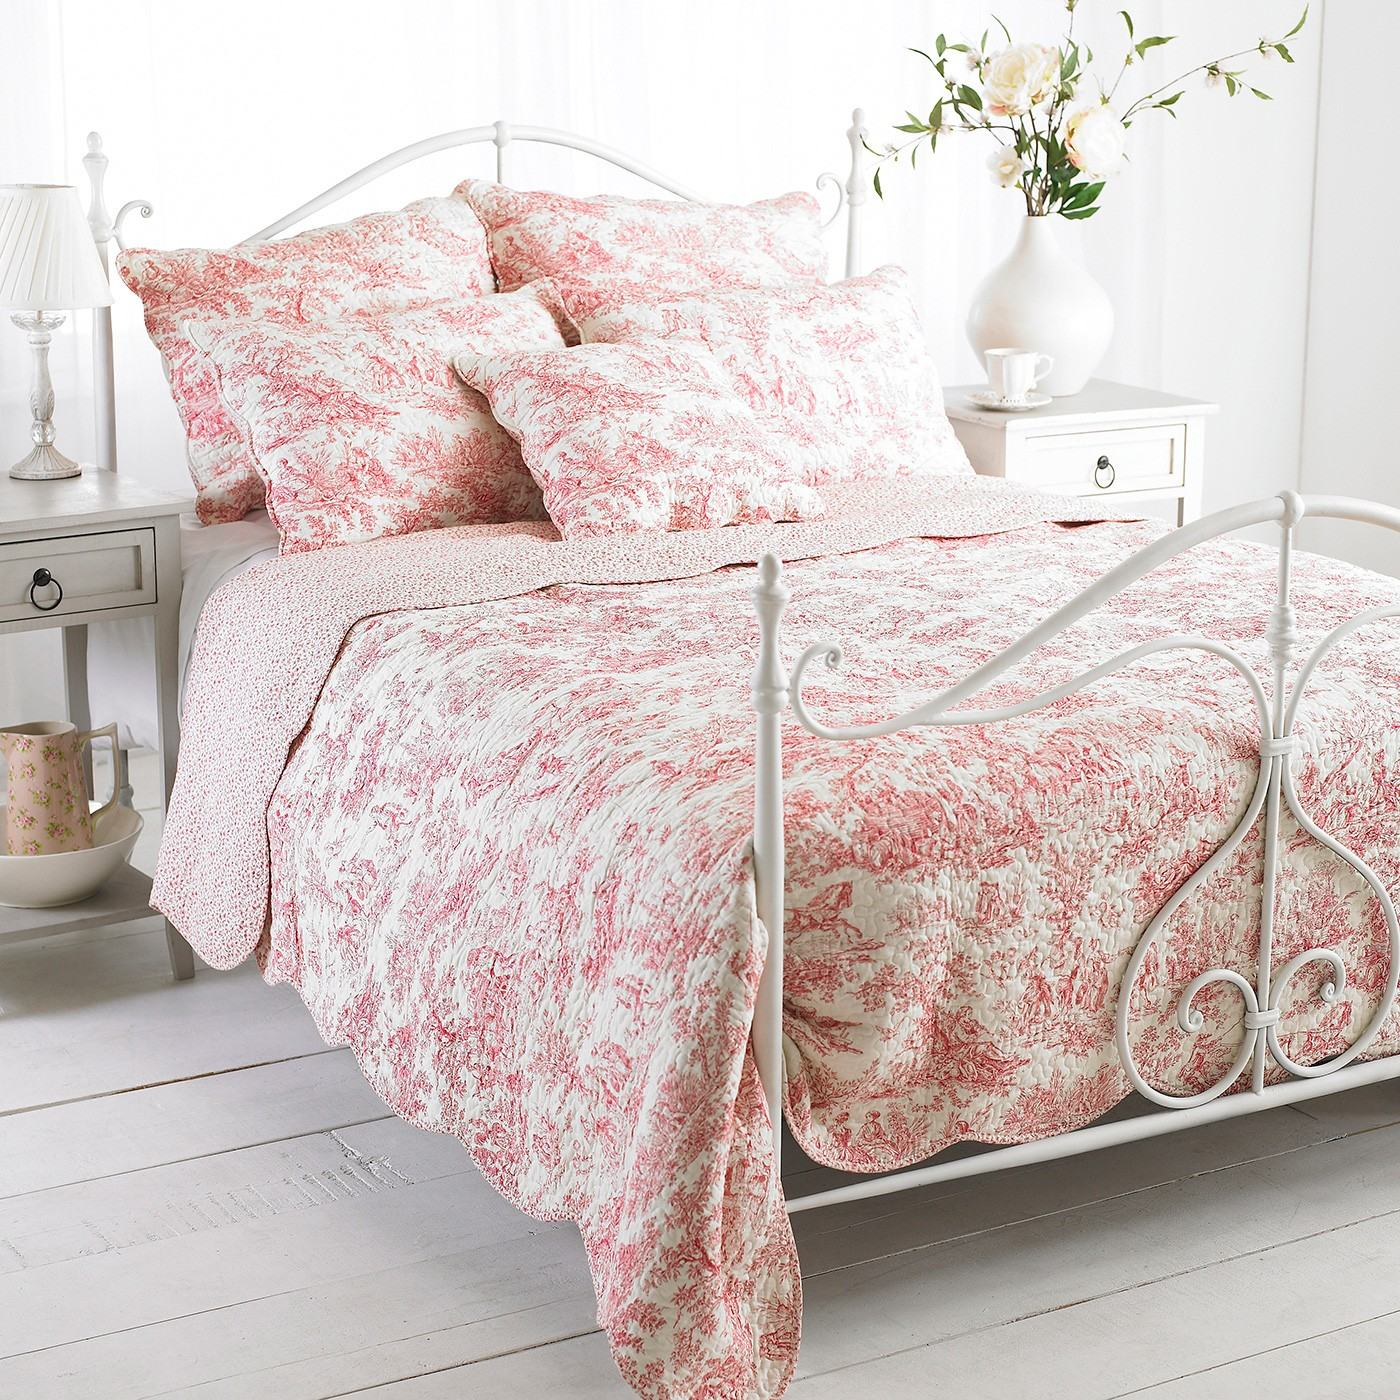 French Vintage Toile Luxury 100 Cotton Quilted Bed Throw